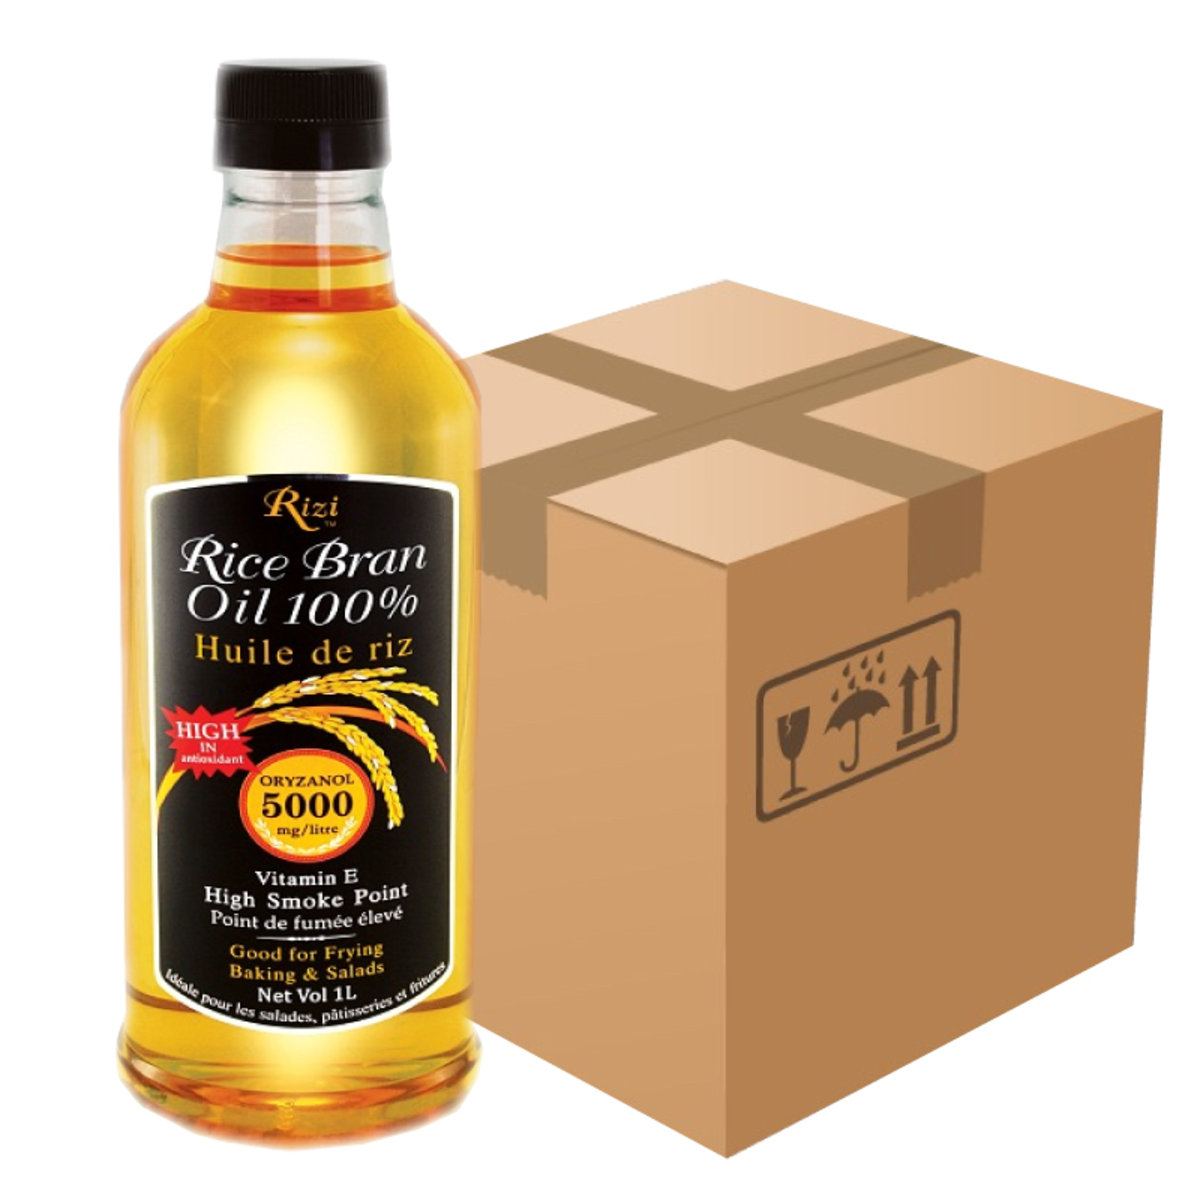 Rice Bran Oil from Thailand